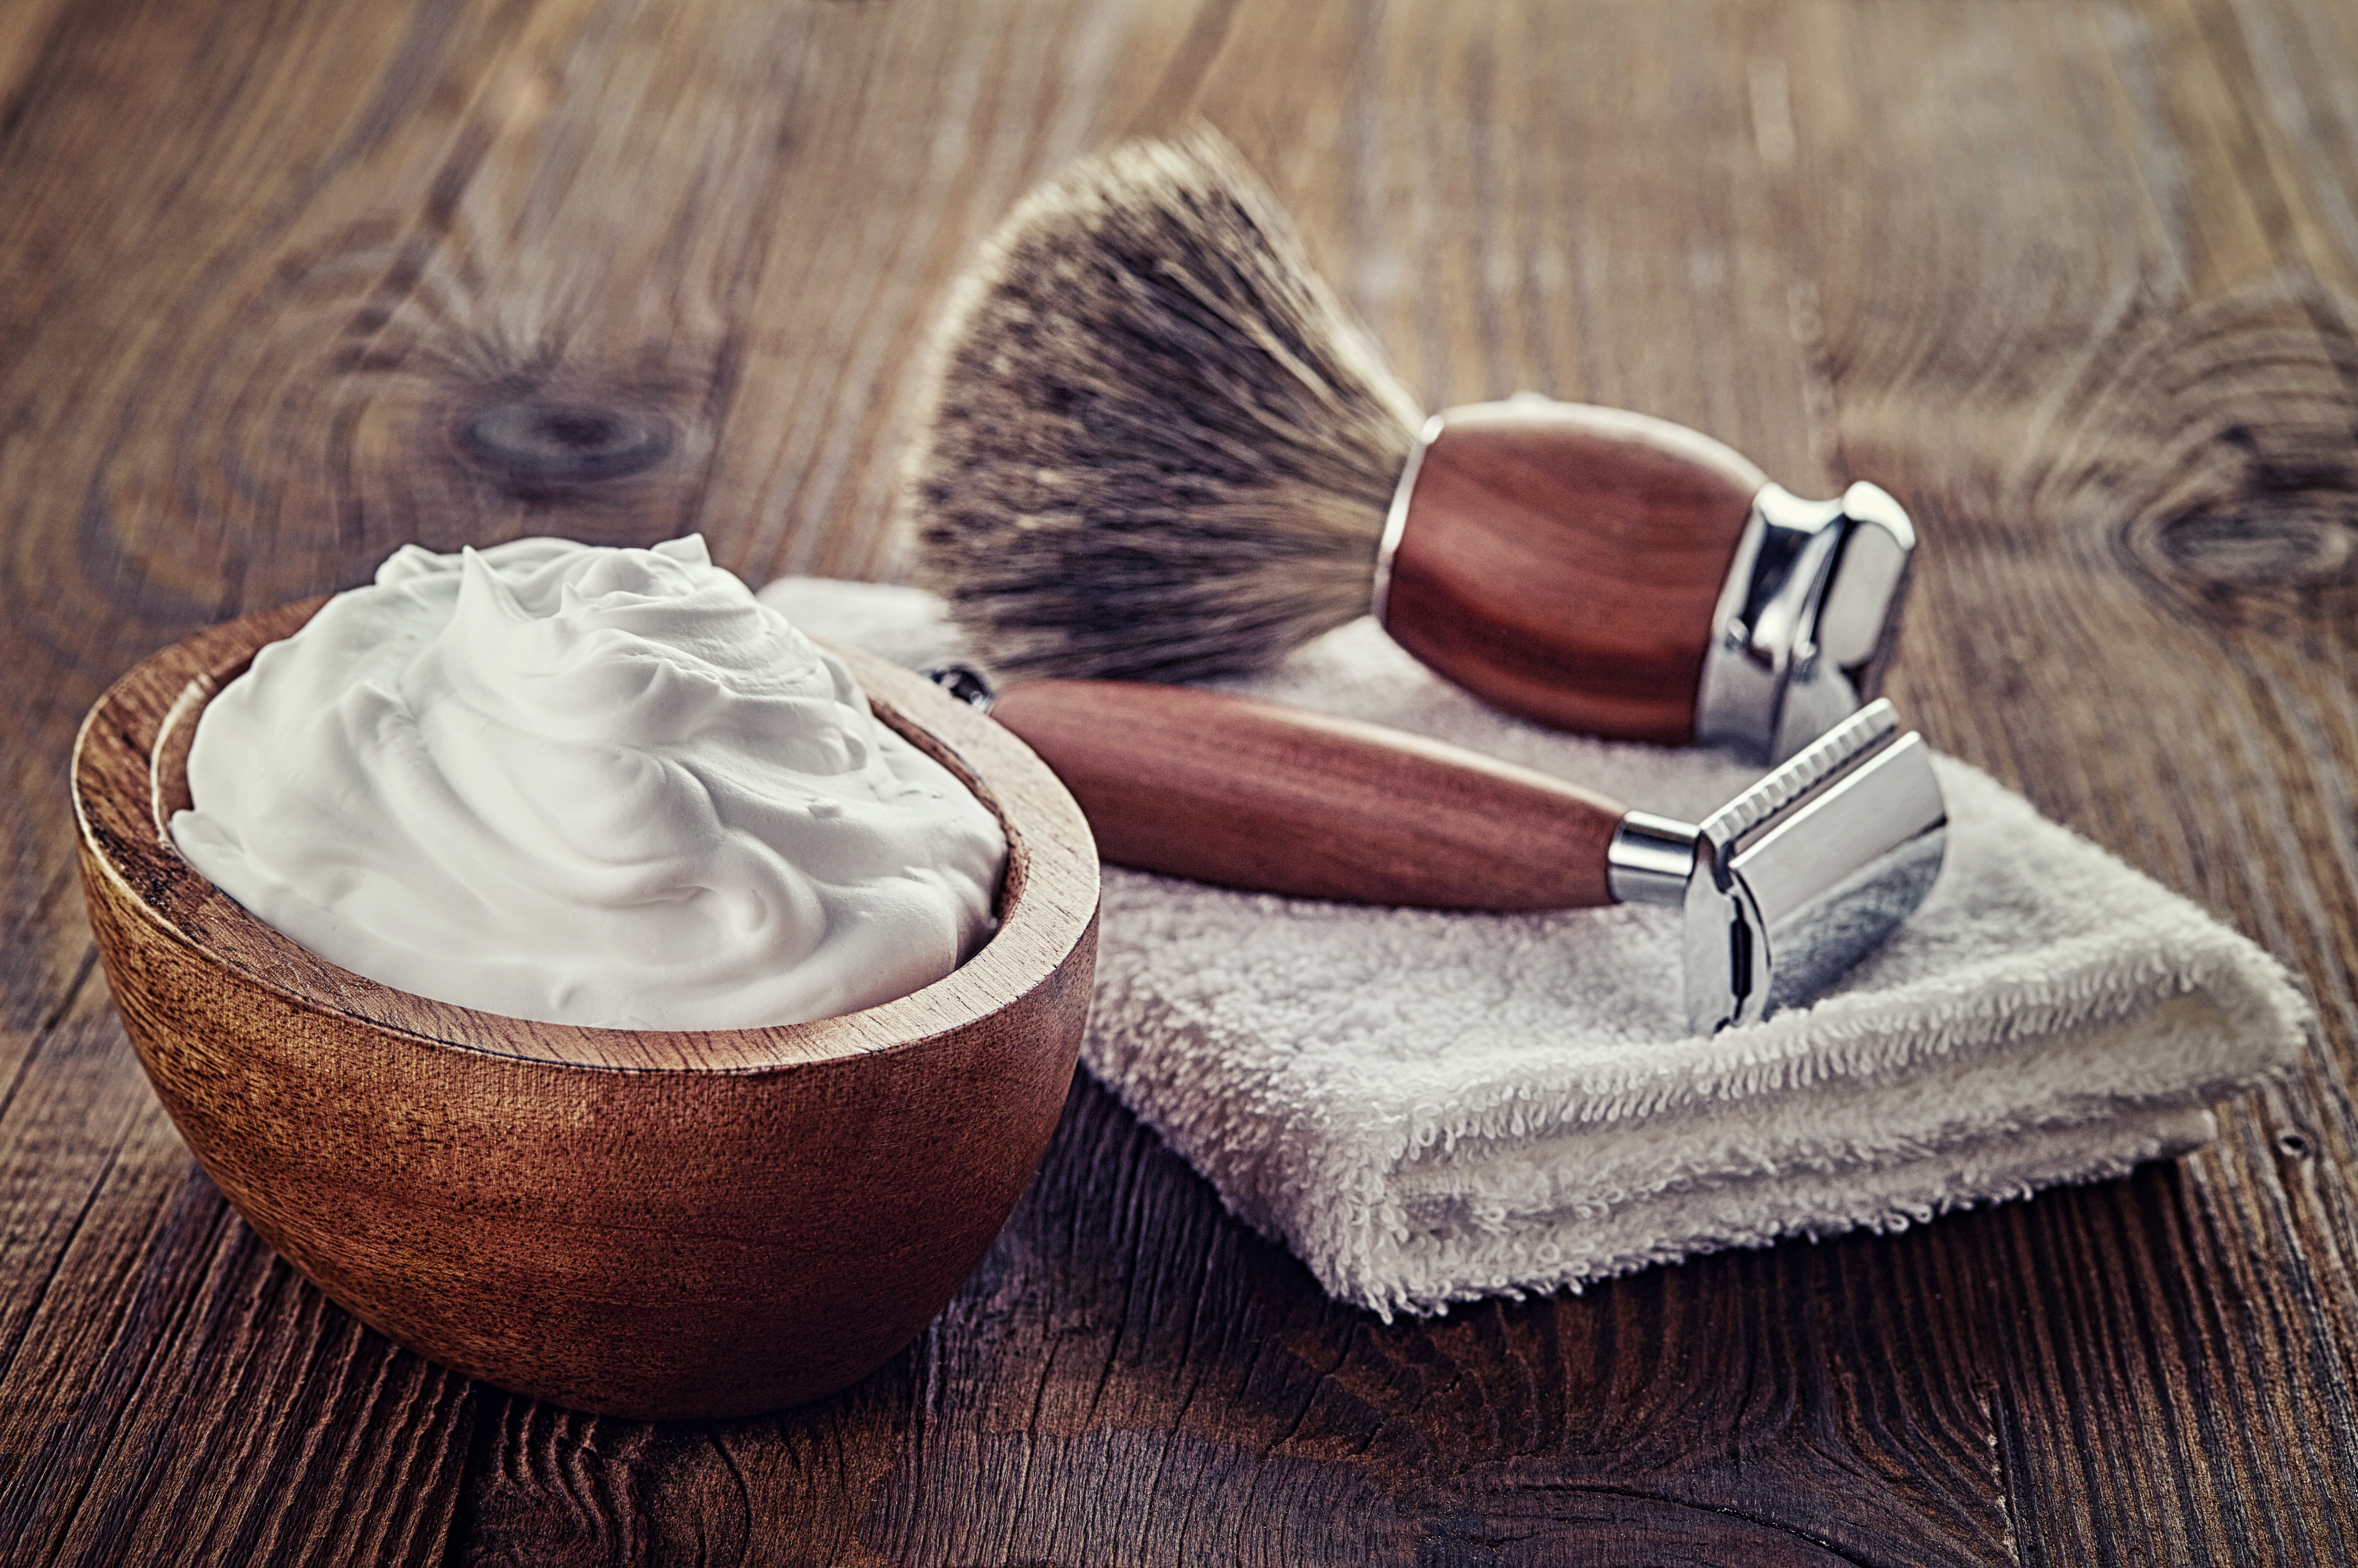 At the barber's shaving foam and brush